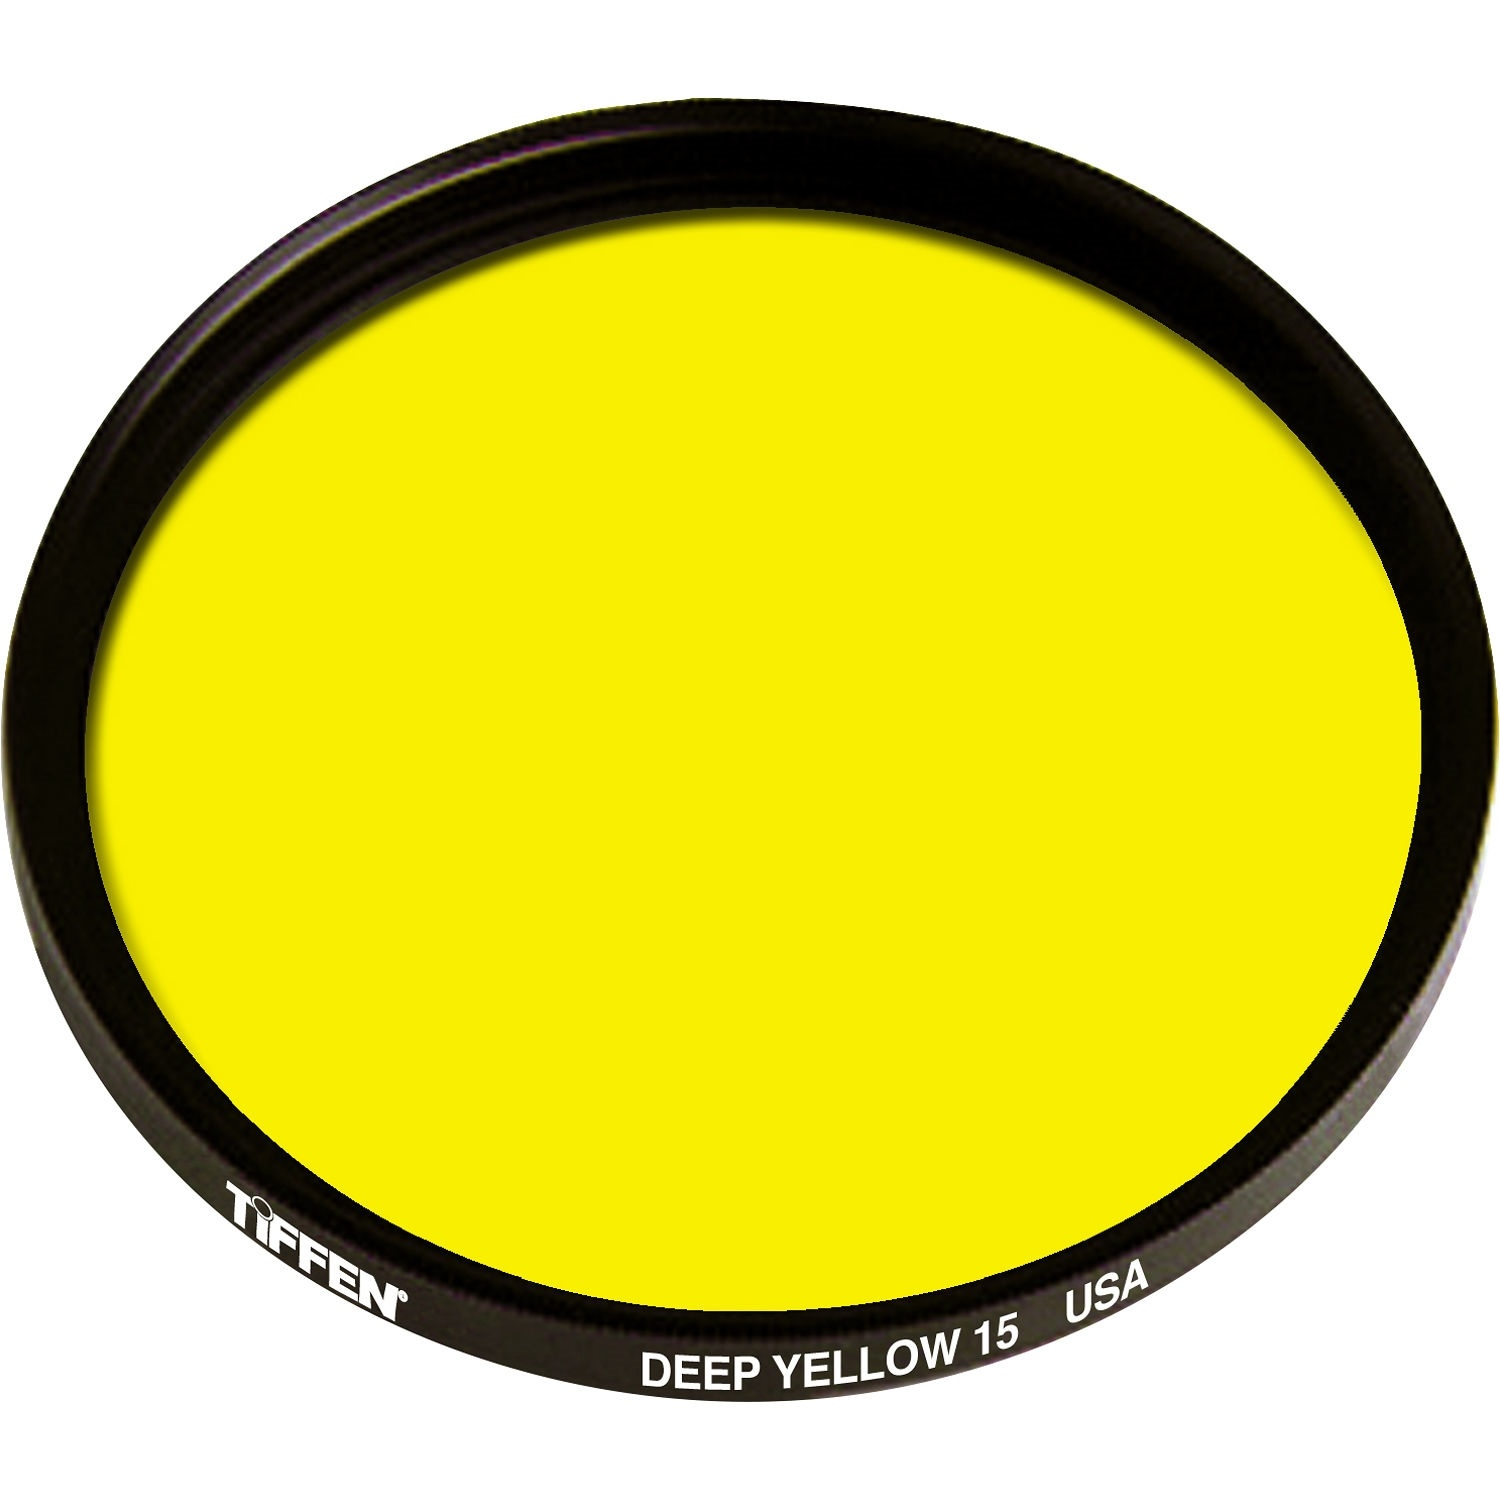 Tiffen 72mm Deep Yellow 15 Glass Filter for Black & White Film